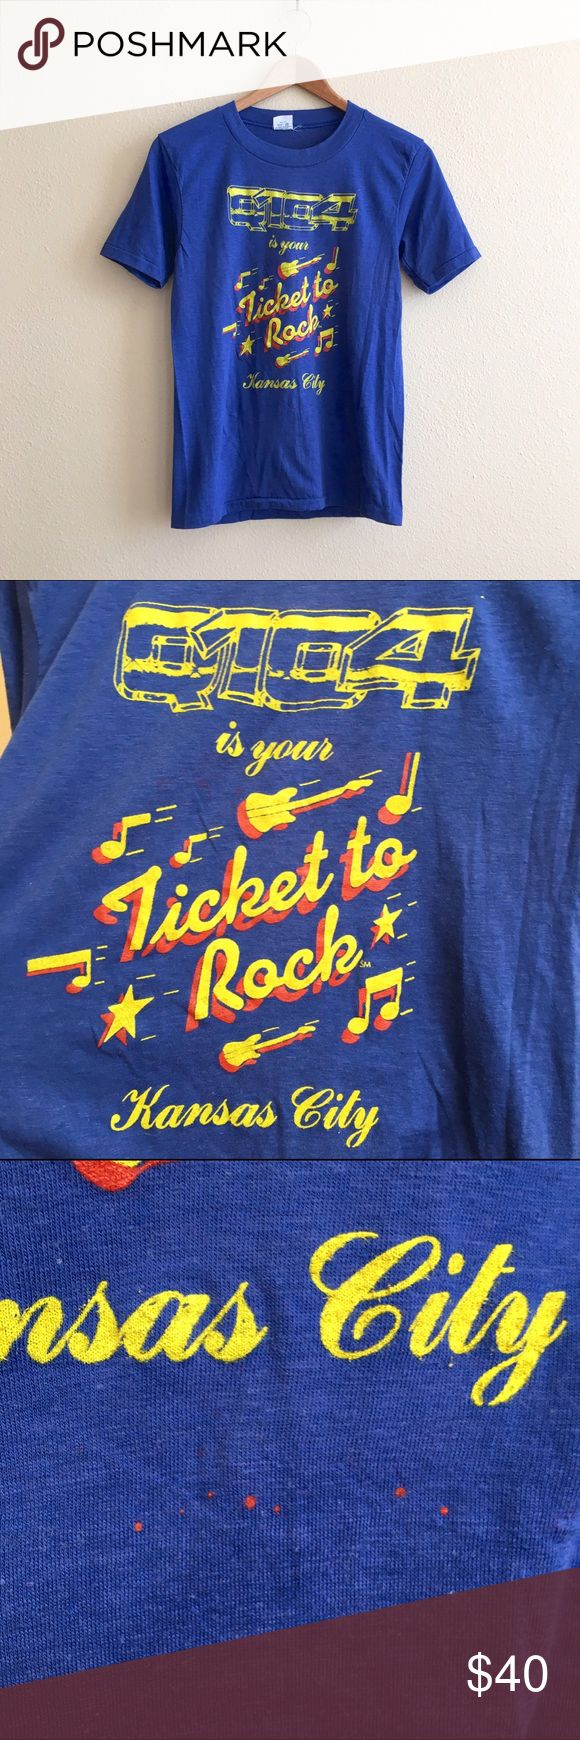 "70s / Kansas City Paper Thin Radio Tee Paper thin royal blue tee from country radio station Q104, ""Ticket to Rock"" Kansas City. There are a few red spots shown in photos that are a result of the graphic printing a little sloppy.   BRAND: Mayo Spruce MATERIAL: 50/50 YEAR/ERA: 70s LABEL SIZE: M BEST FIT: XS/S  MEASUREMENTS: Chest 16.5 inches  Length 25 inches   🚫 I do not model or trade, sorry! 💟 Check out my closet for more vintage! Vintage Tops Tees - Short Sleeve"